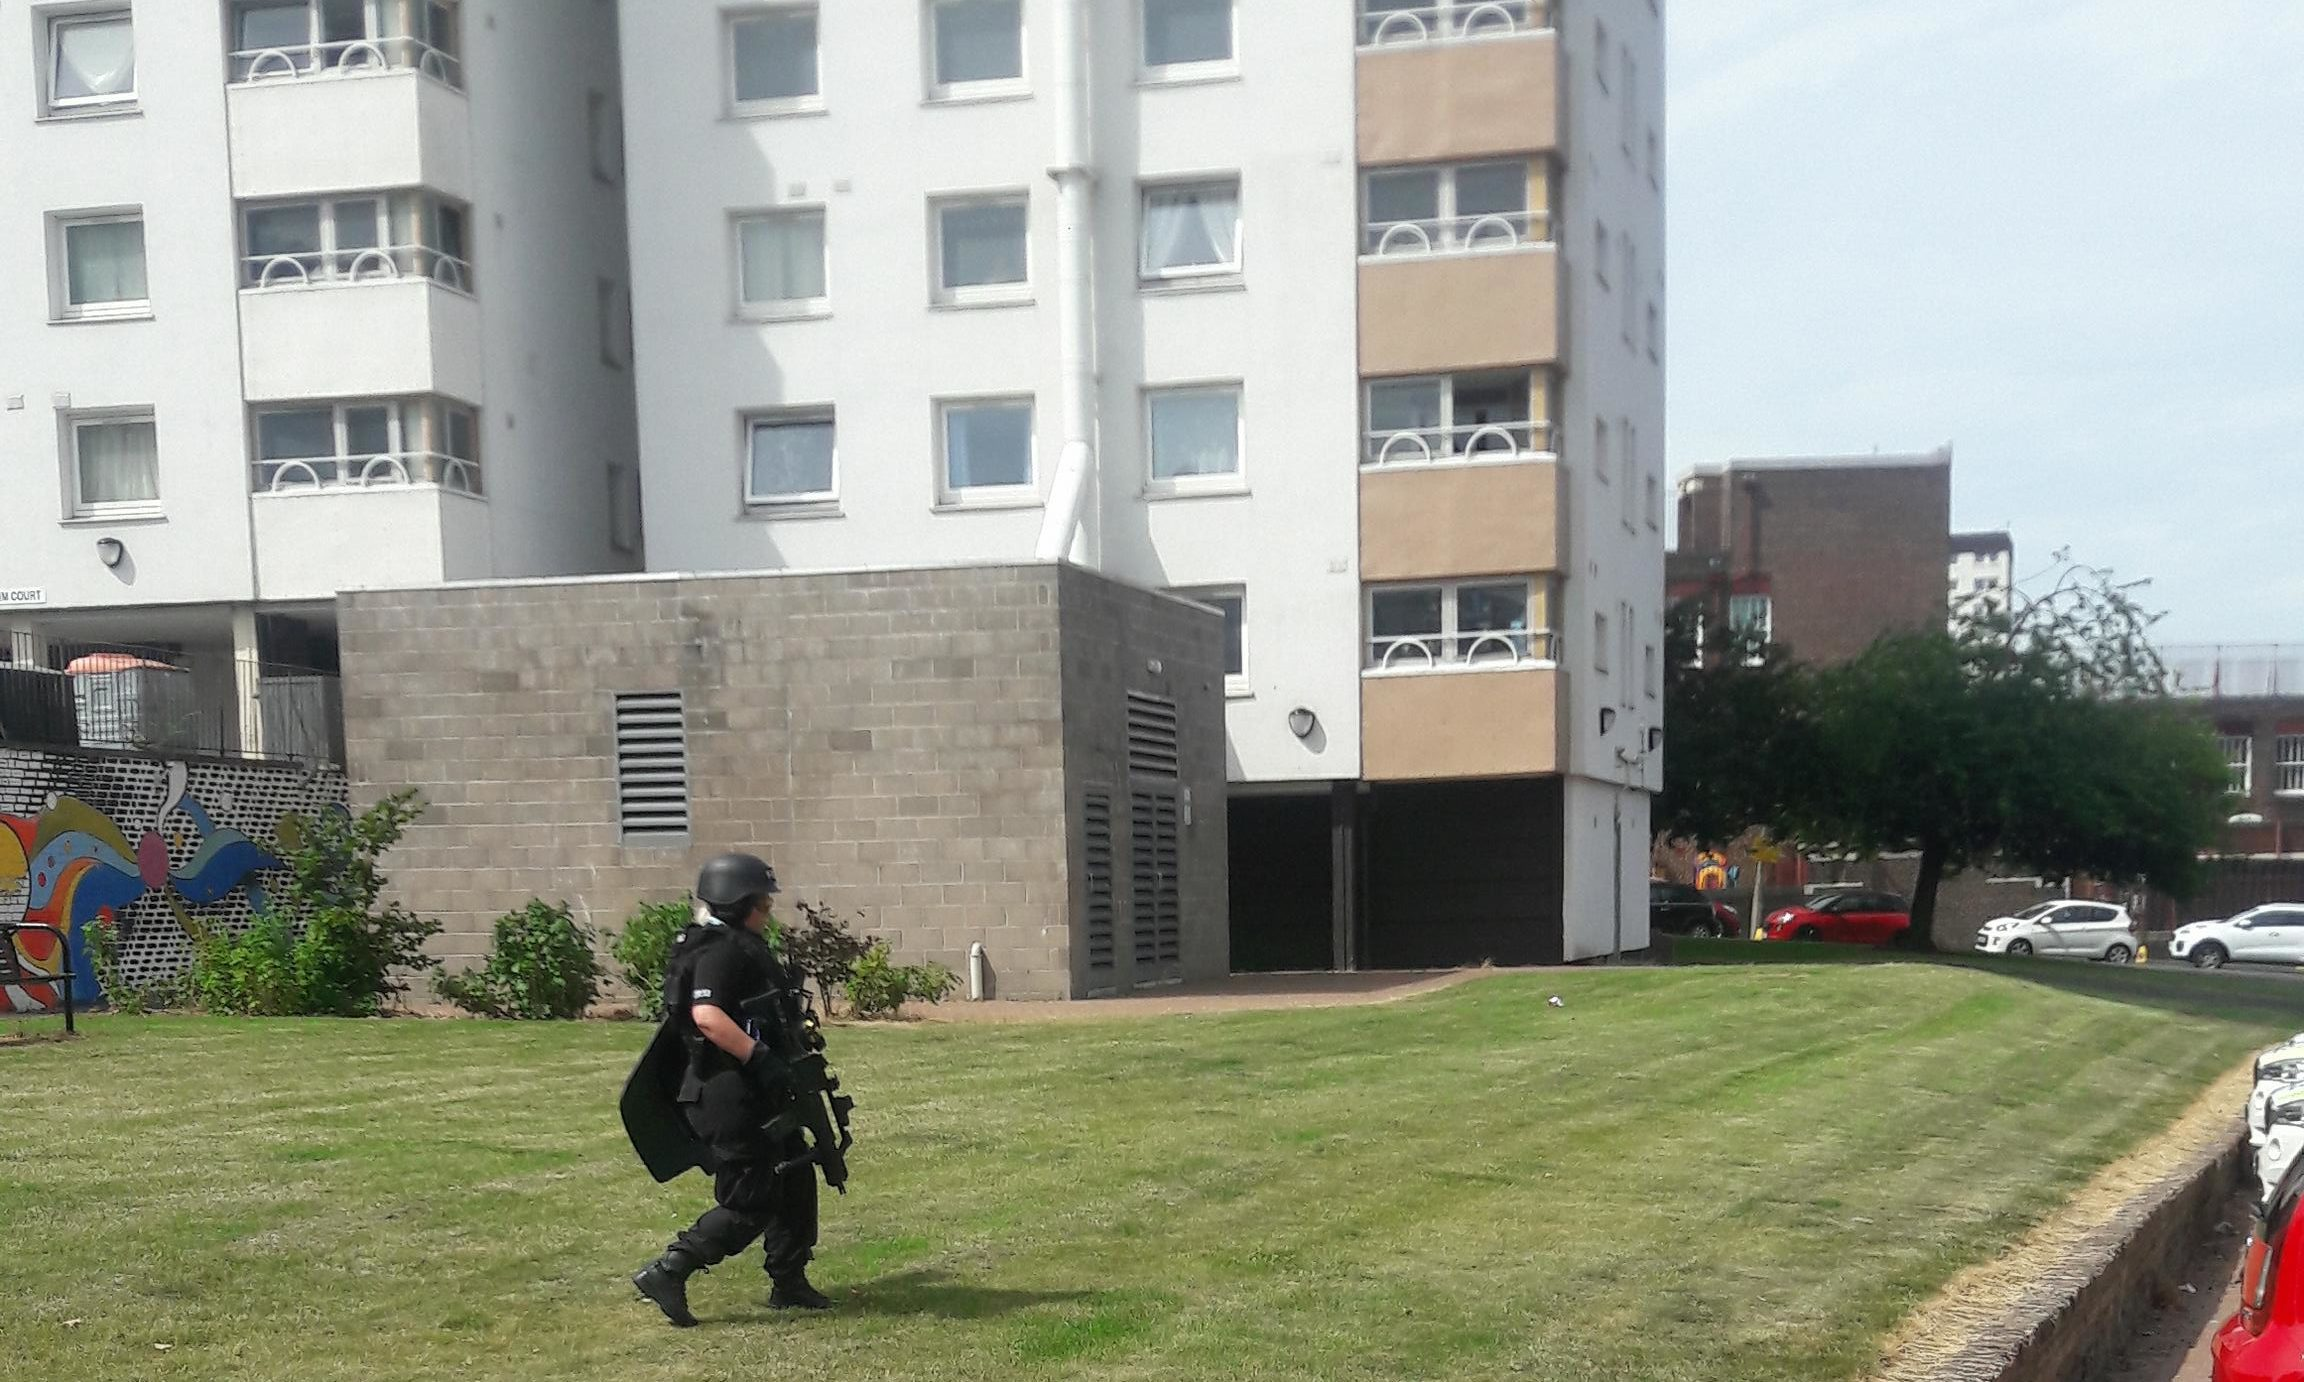 An armed officer making his way to the incident.